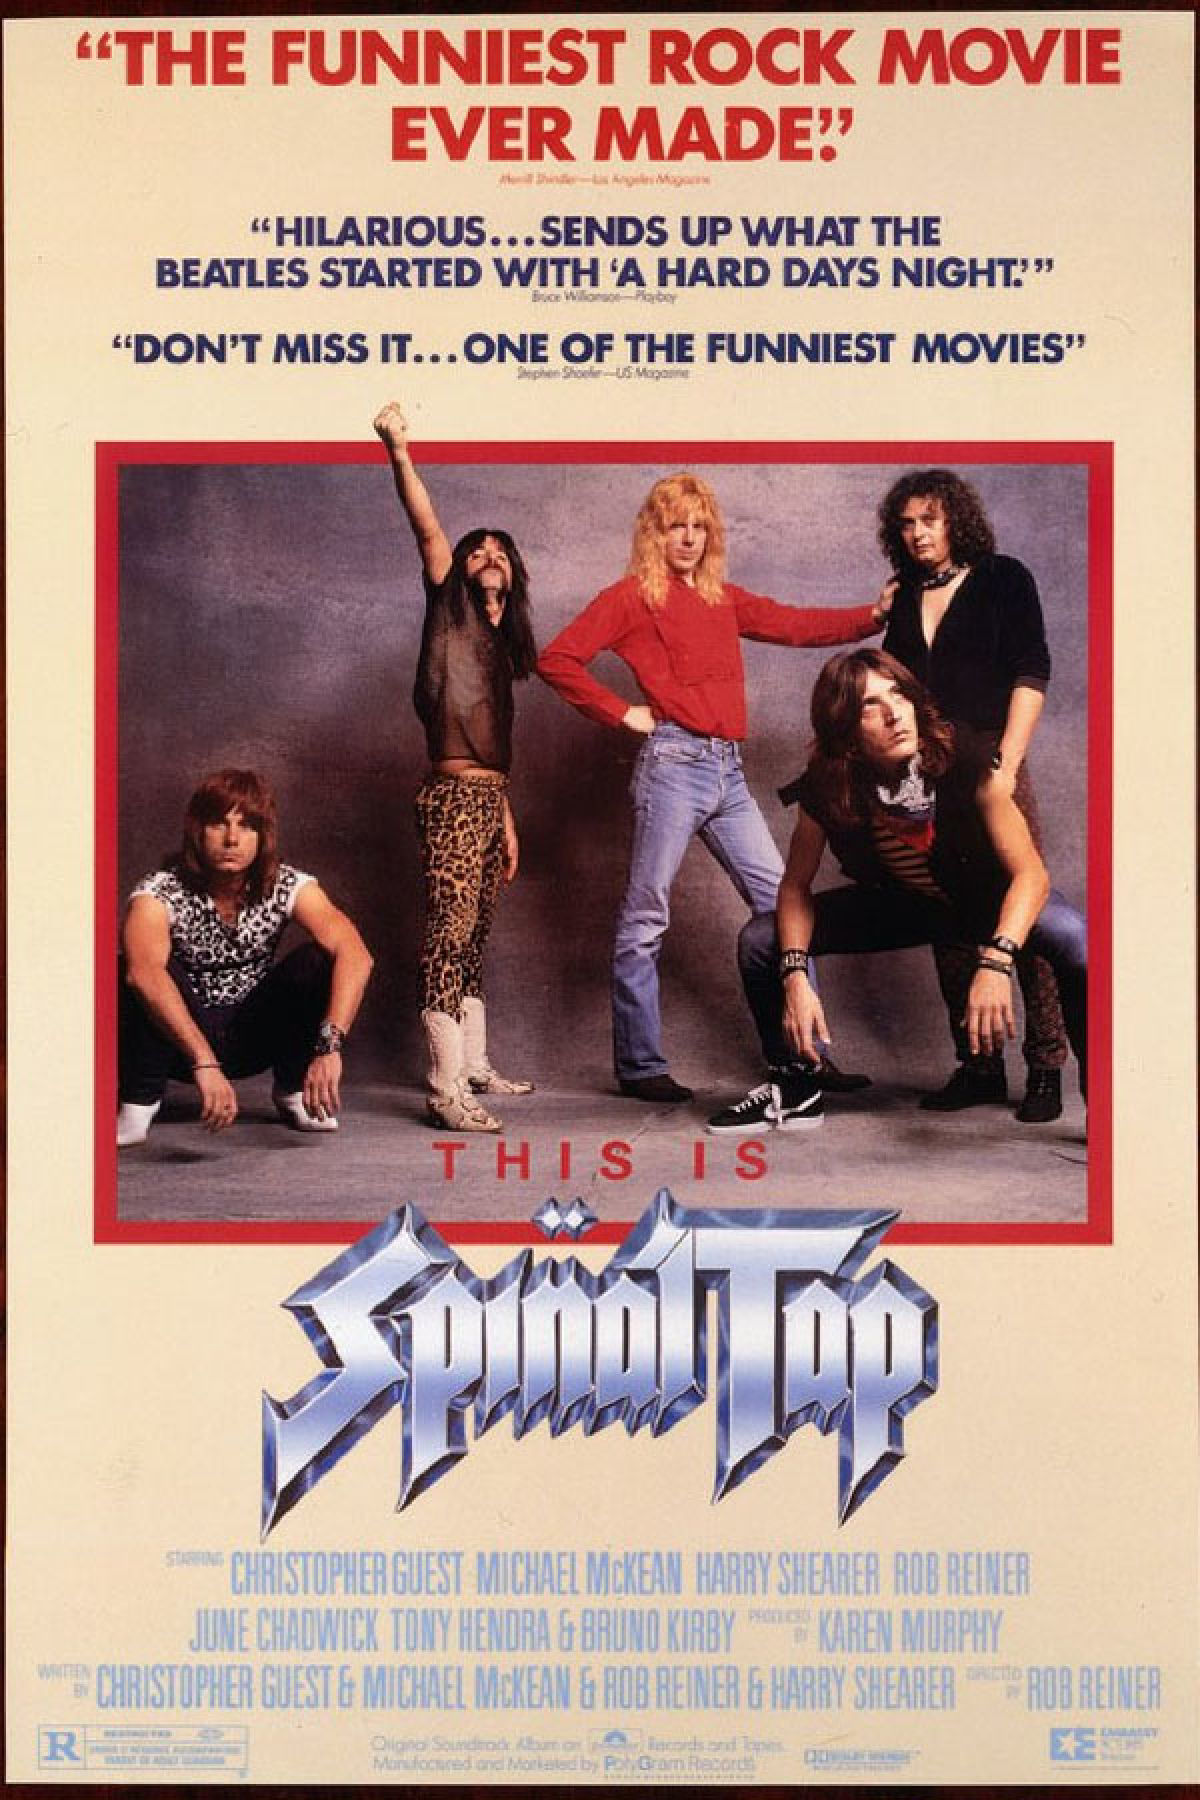 'This Is Spinal Tap' movie poster